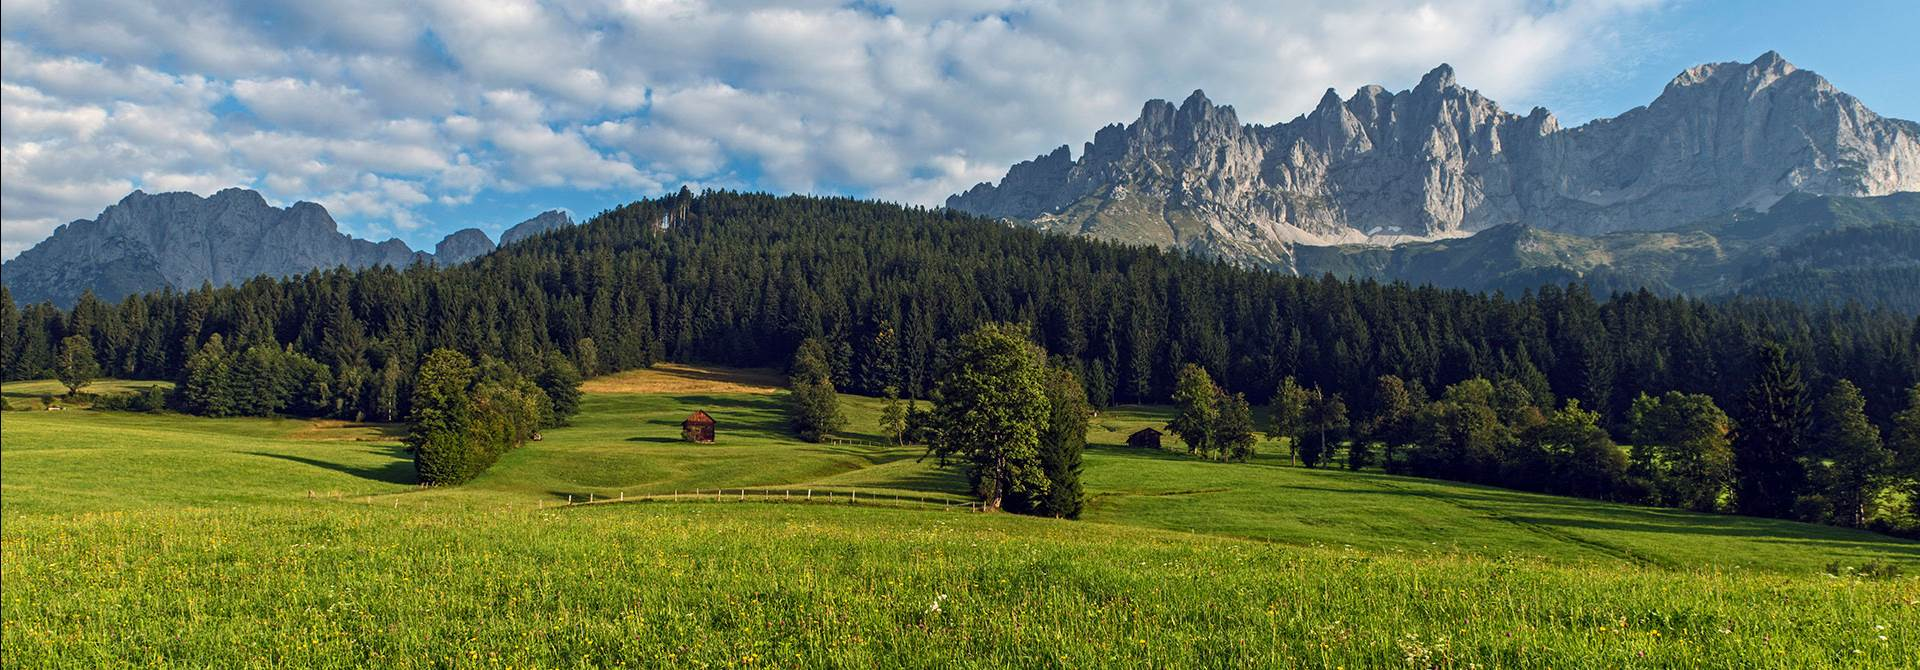 Meadow in Ellmau with a mountain panorama